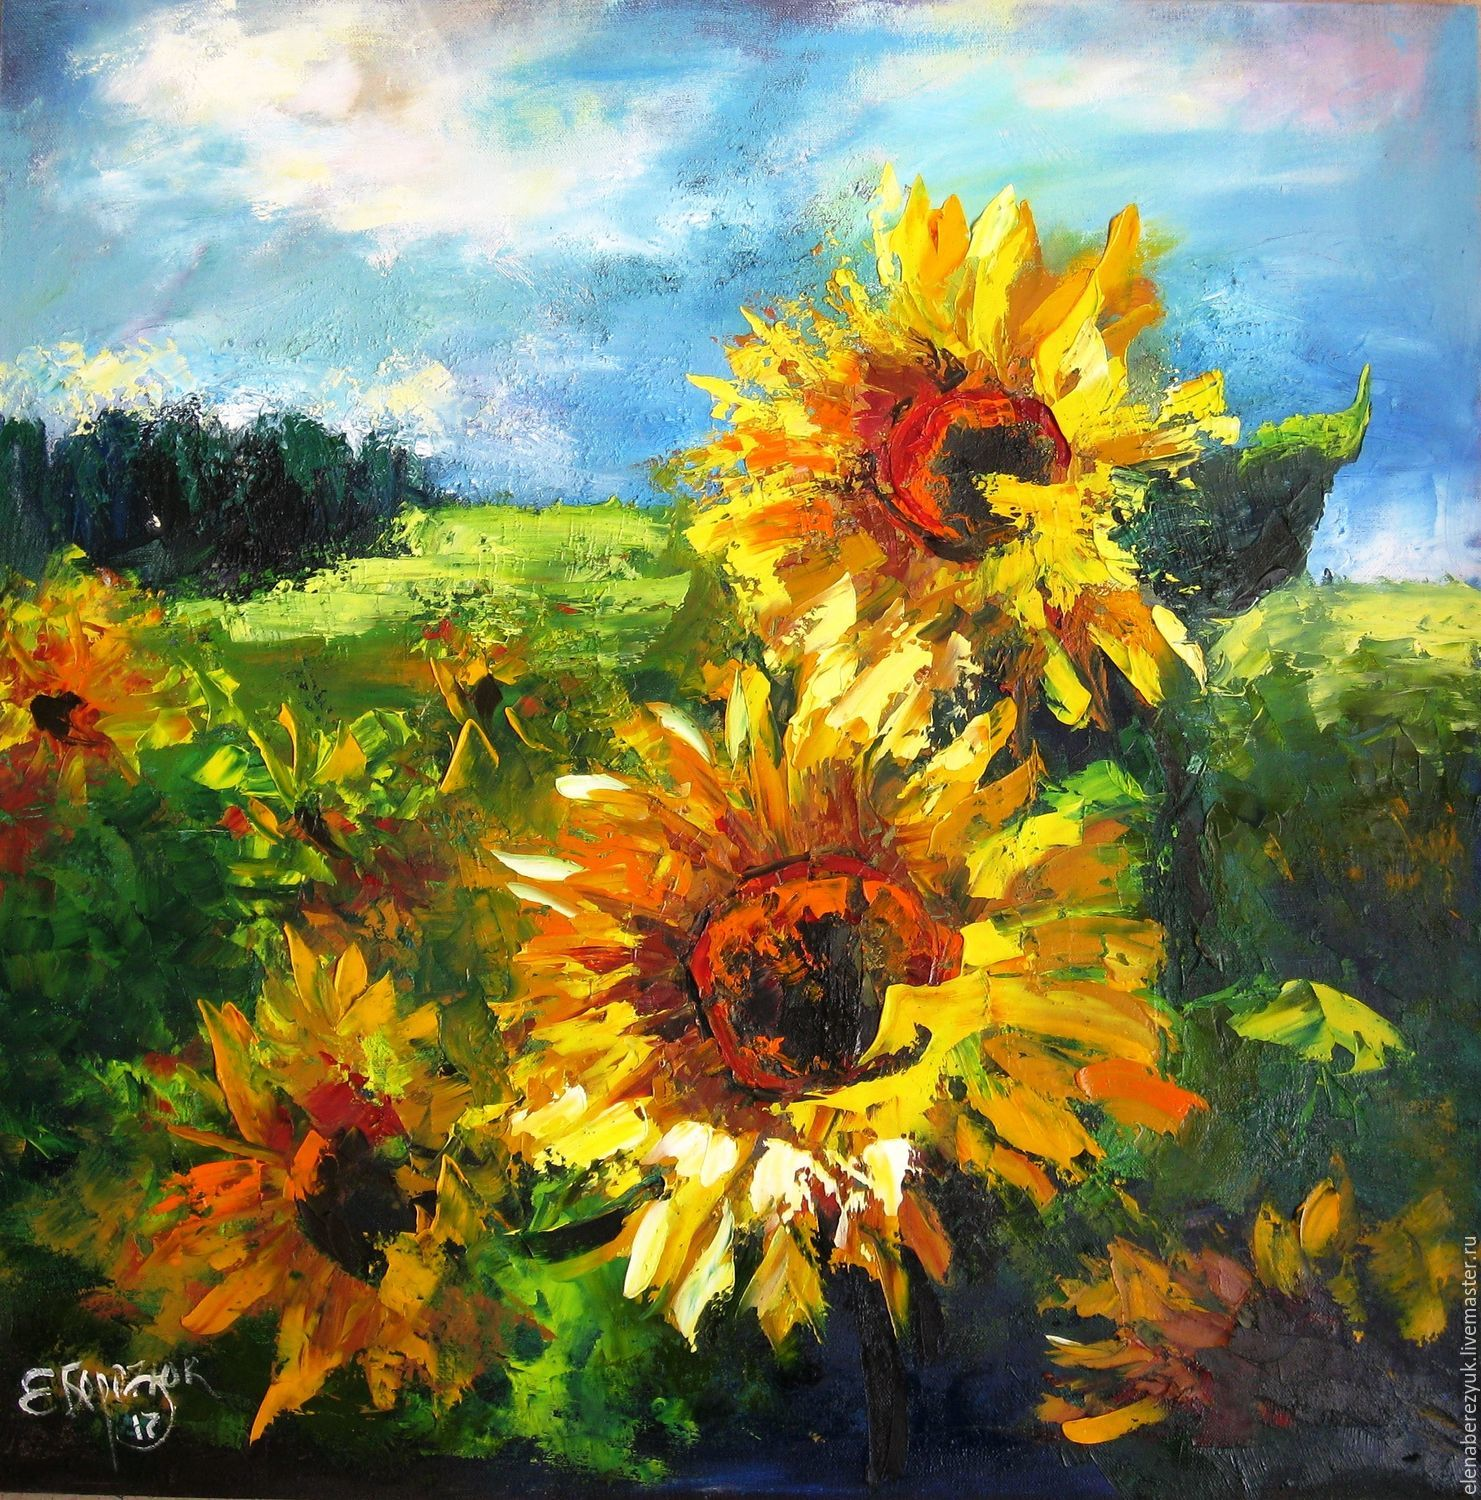 Oil painting on canvas sunflowers in fields shop online for Buy mural paintings online